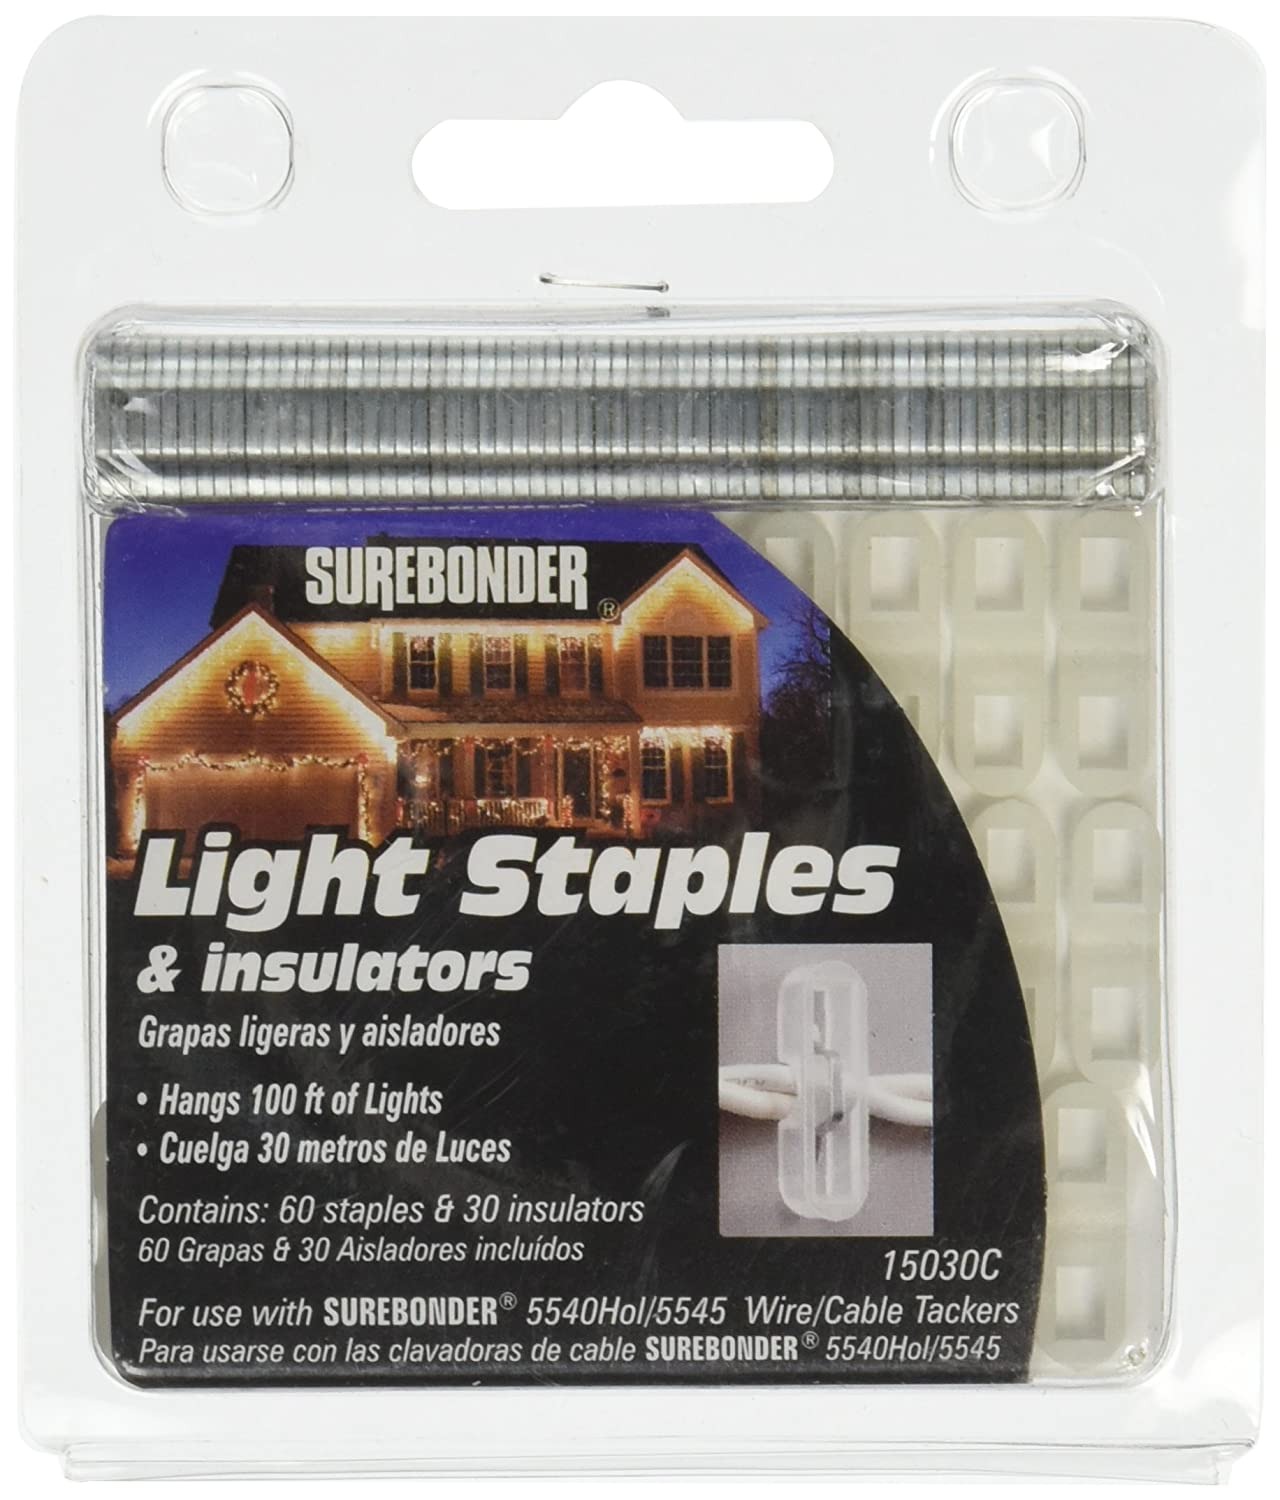 15030C-5 Light Staples and Insulators - 60 Staples and 30 Insulators ...